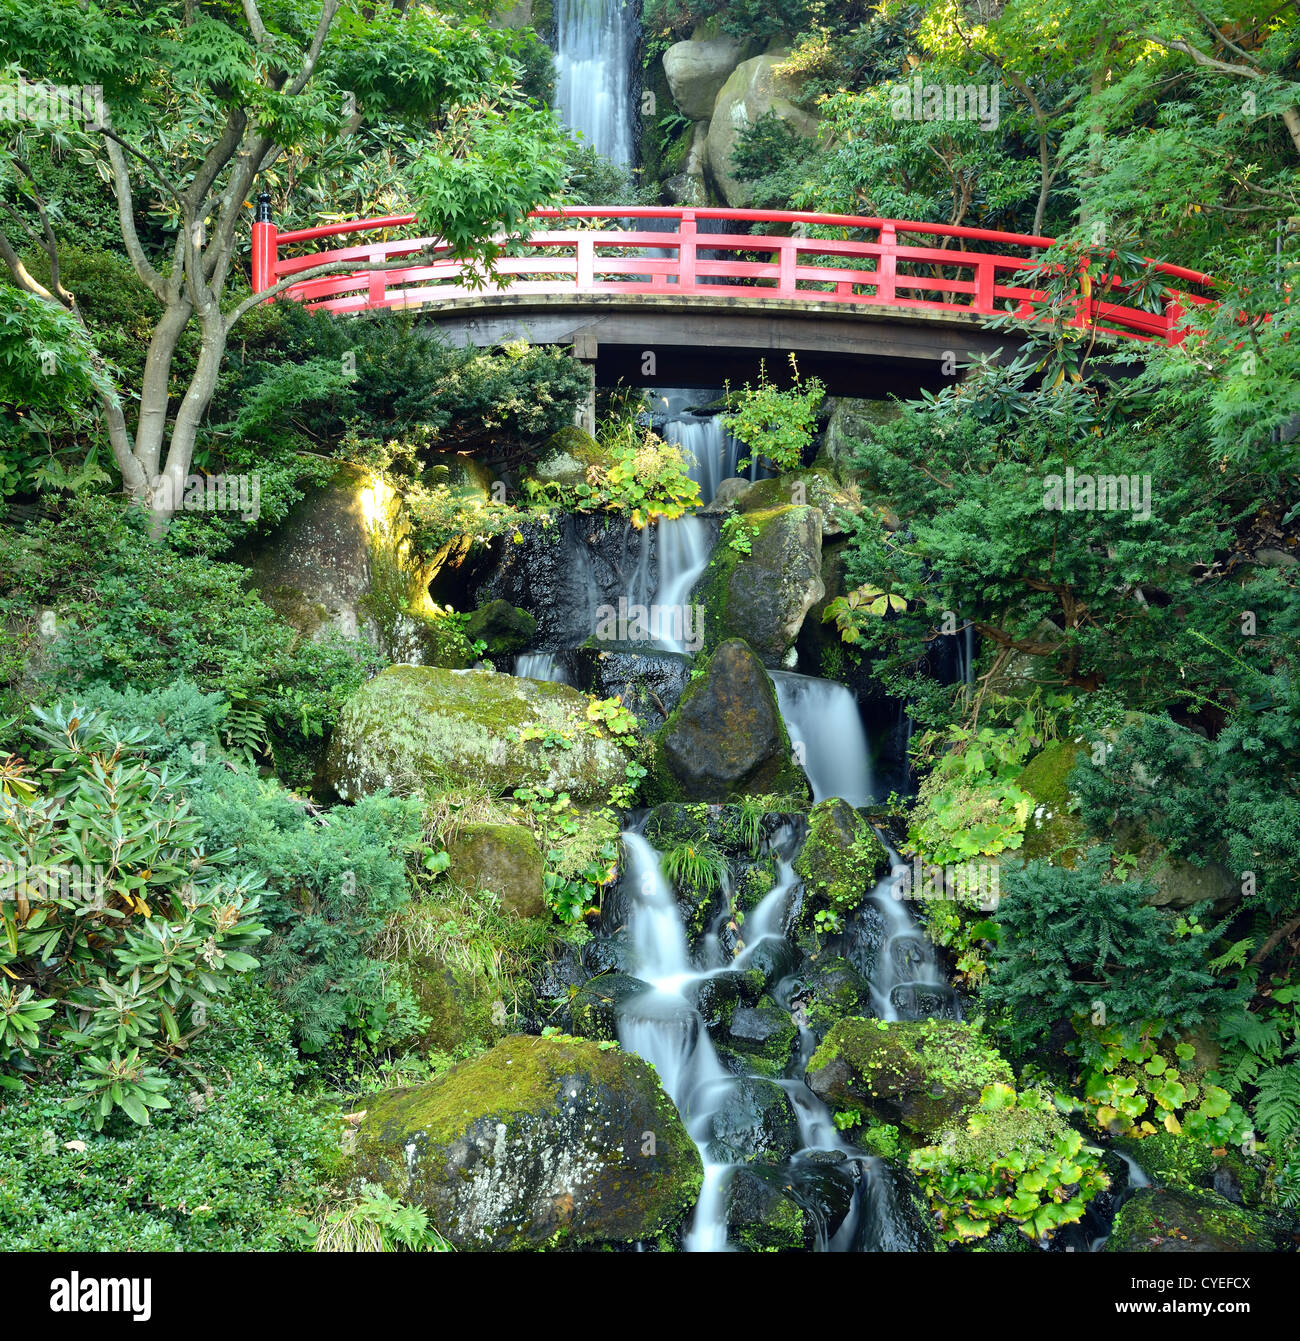 Cascade pittoresque en Japonais Hirosaki, Japon. Photo Stock